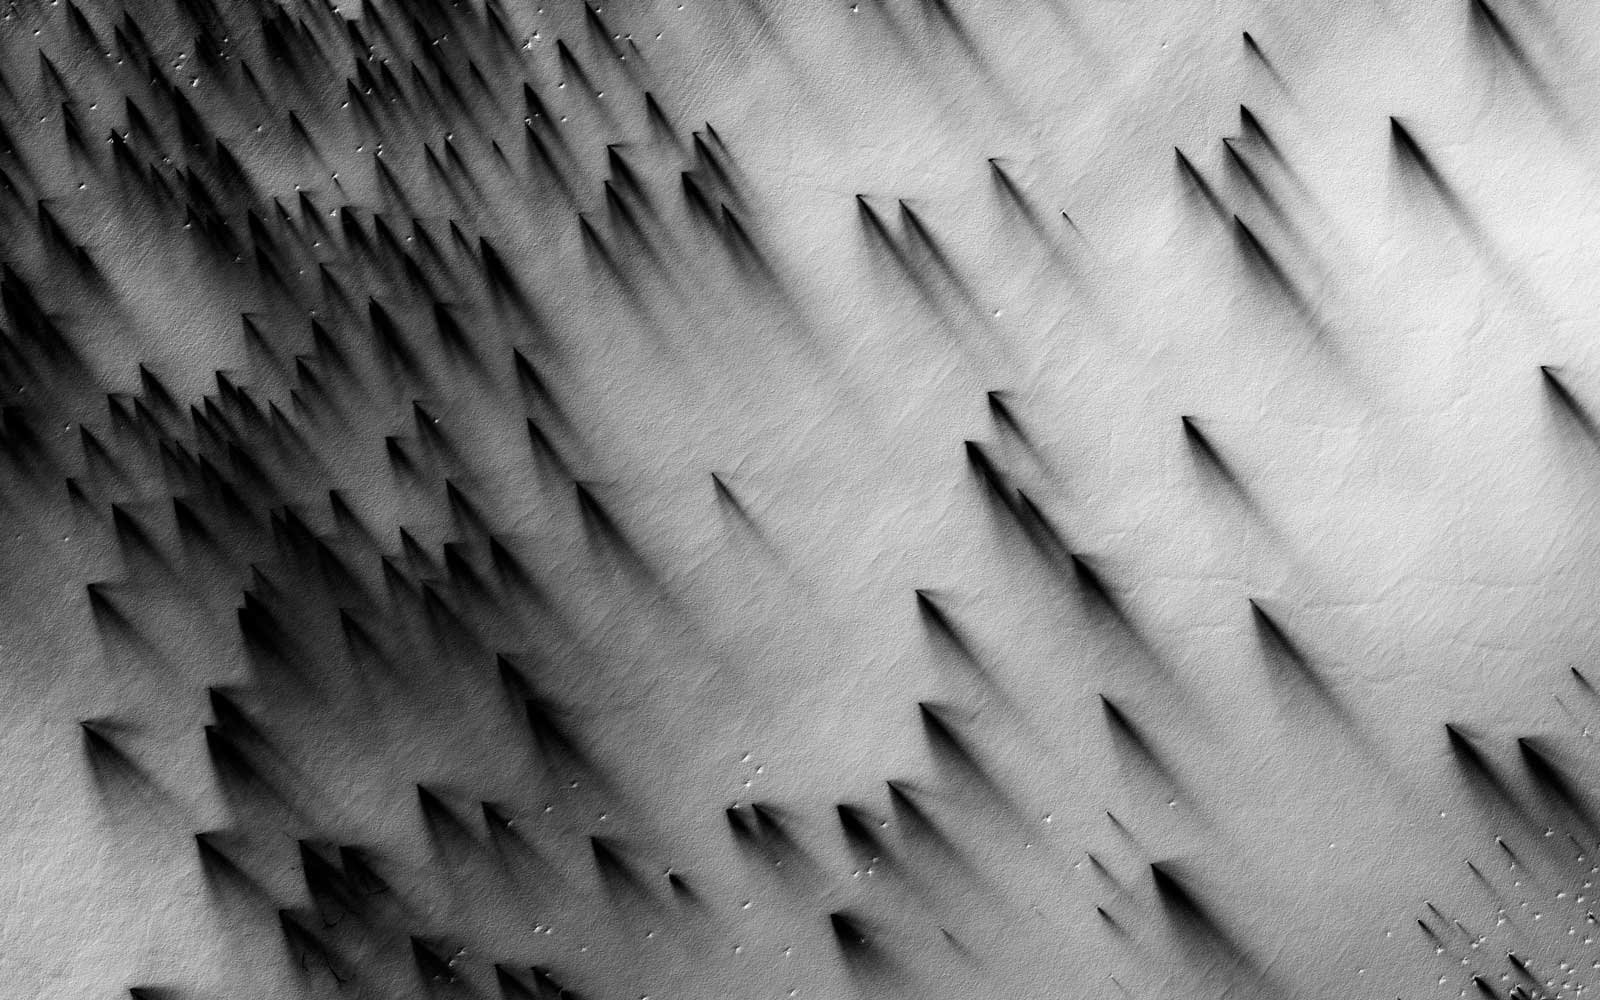 Polar Region of the South, Fans and Polygons, LAT: -87.3° LONG: 168°; from This Is Mars (Aperture, 2017)